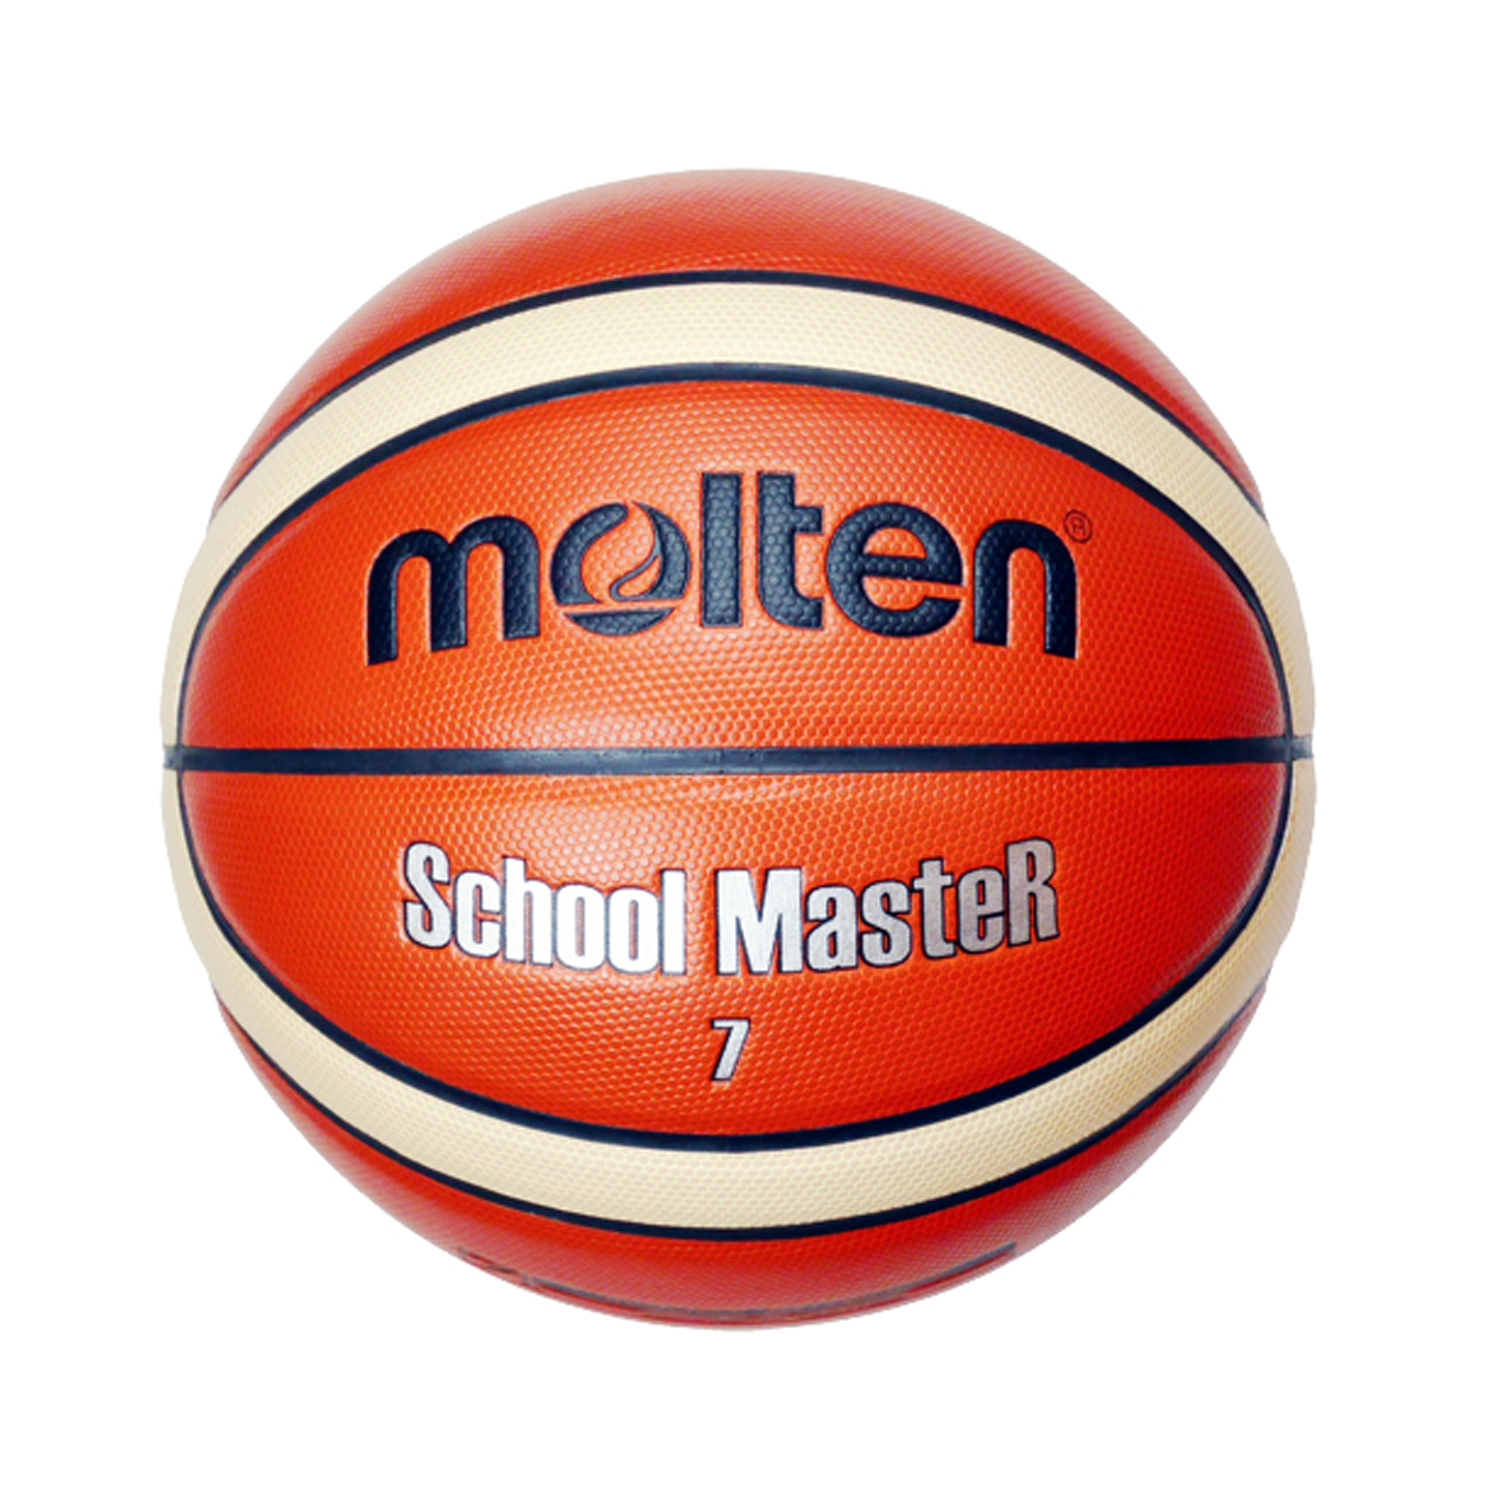 Basketball Molten School Master